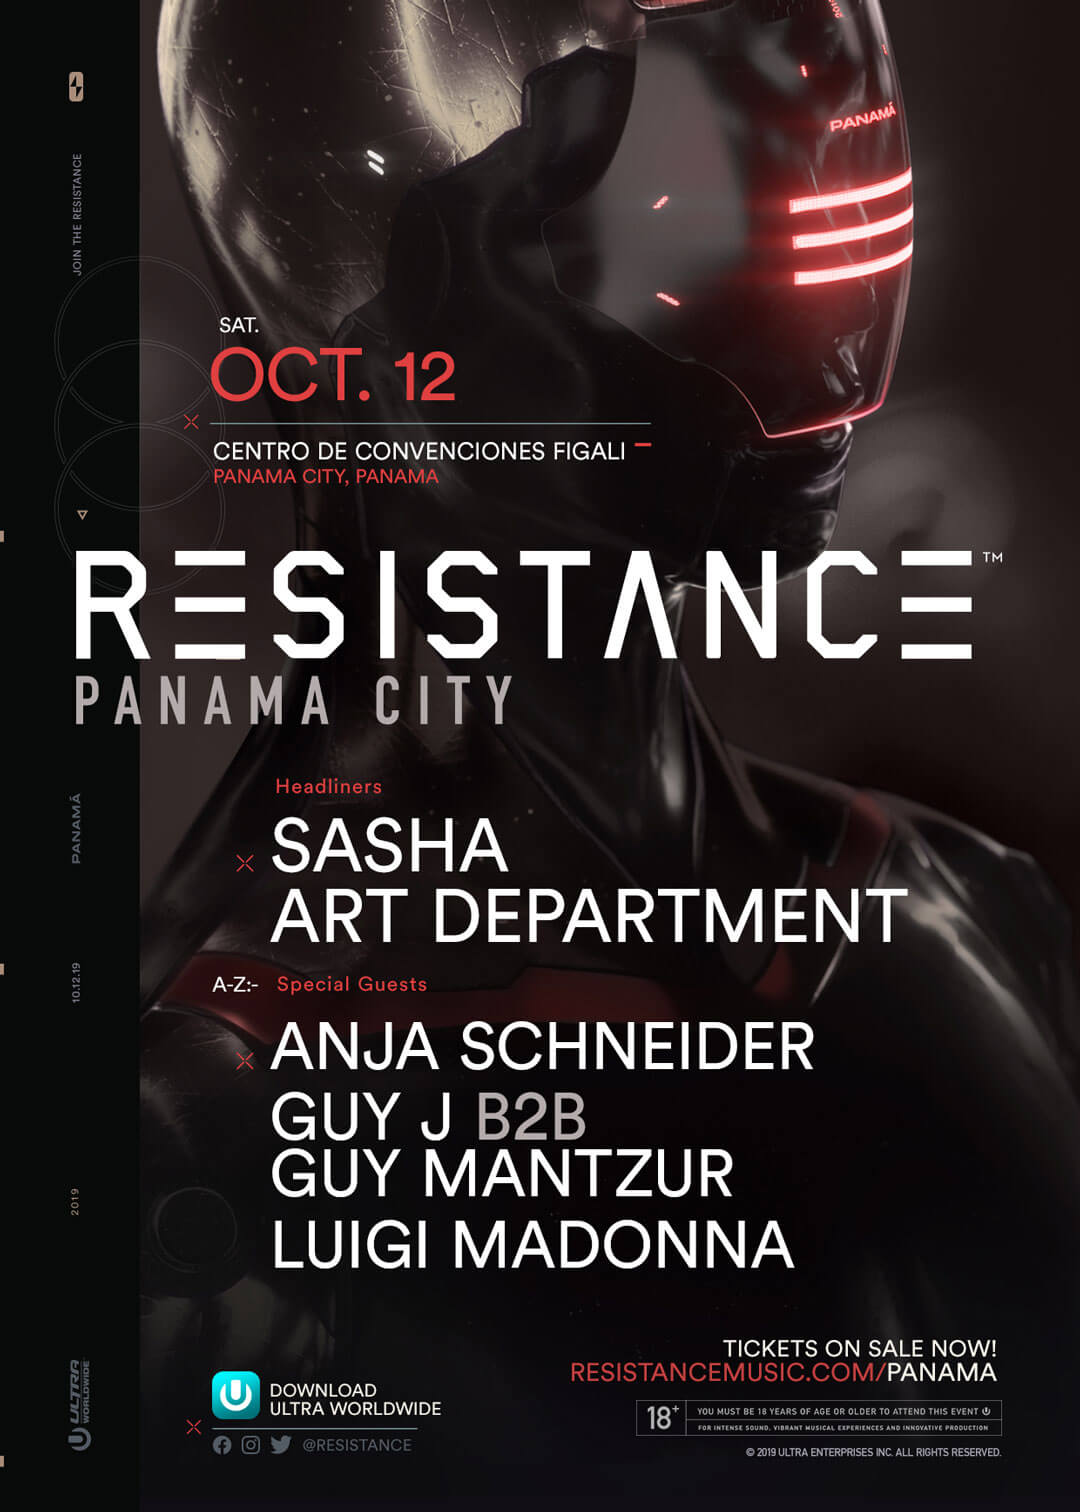 RESISTANCE Panama City Lineup Unveiled